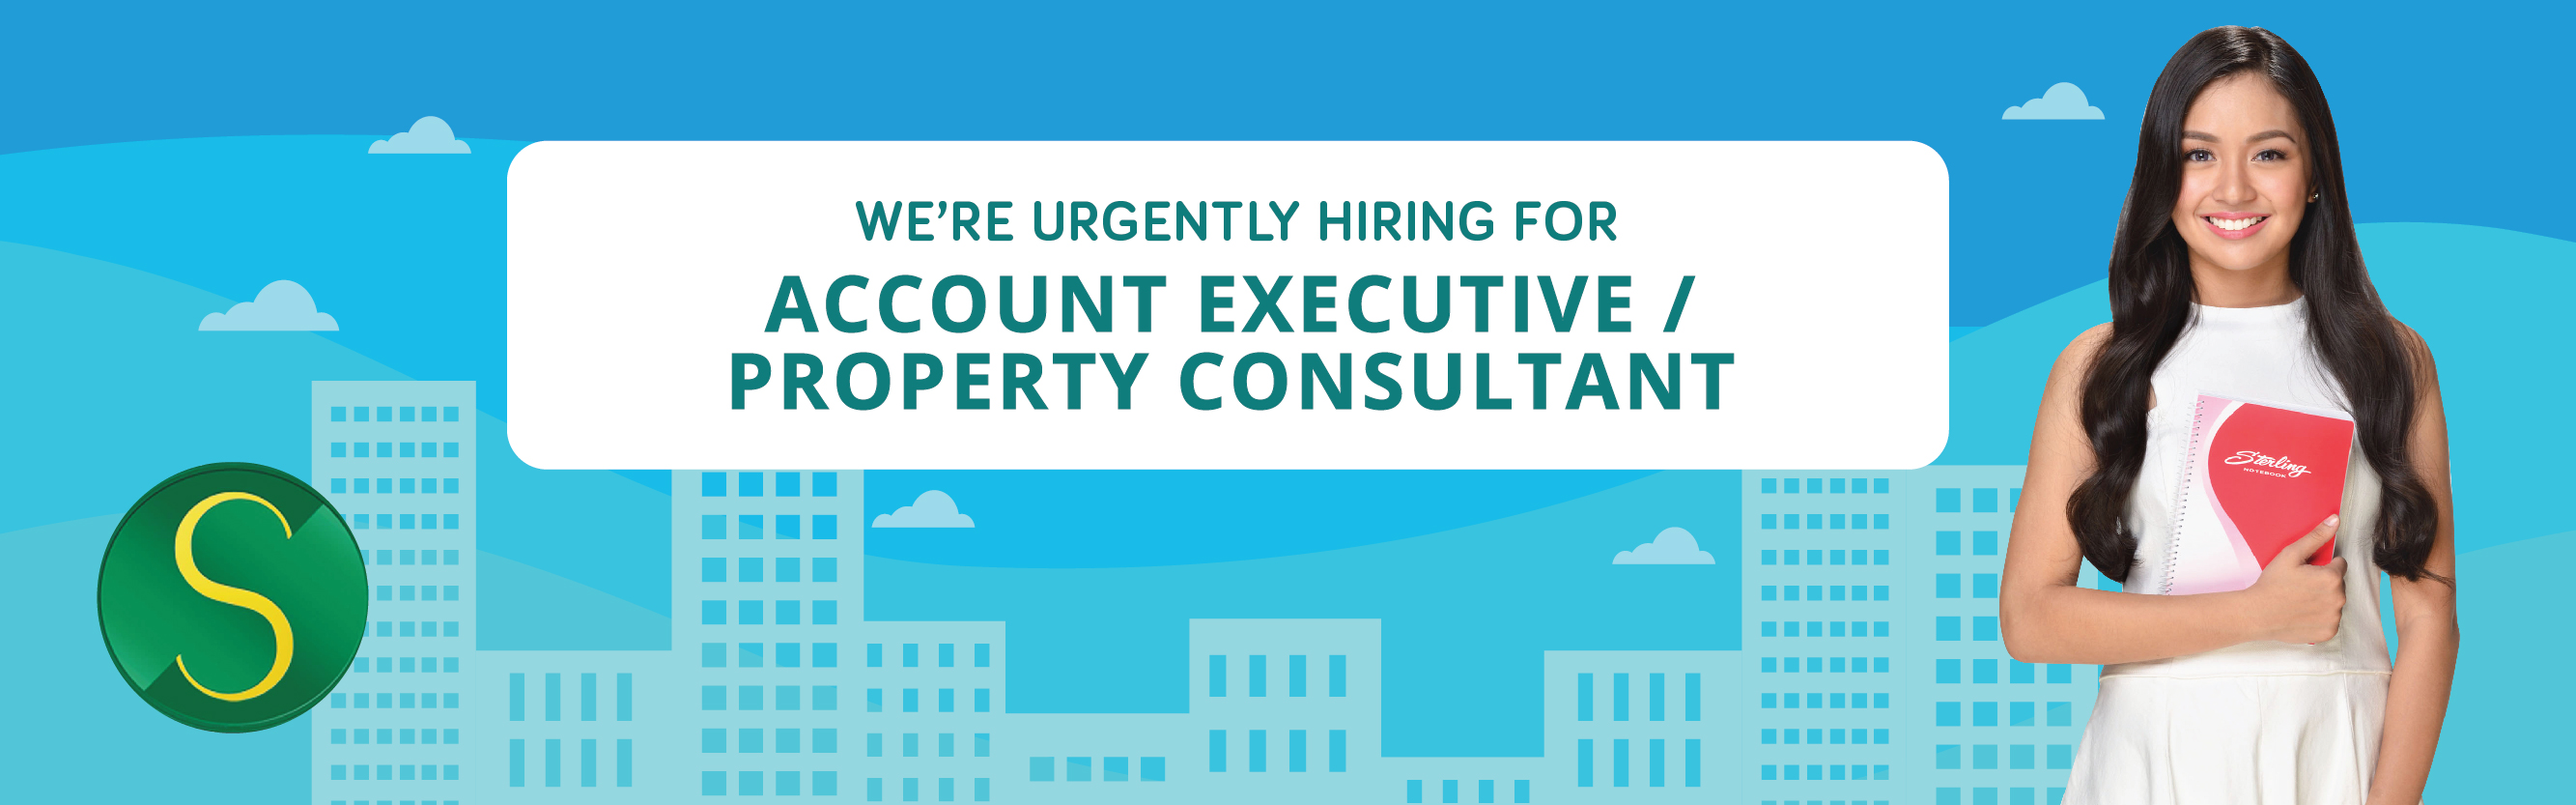 Account Executive, Property Consultant from Sterling Paper Group of Companies